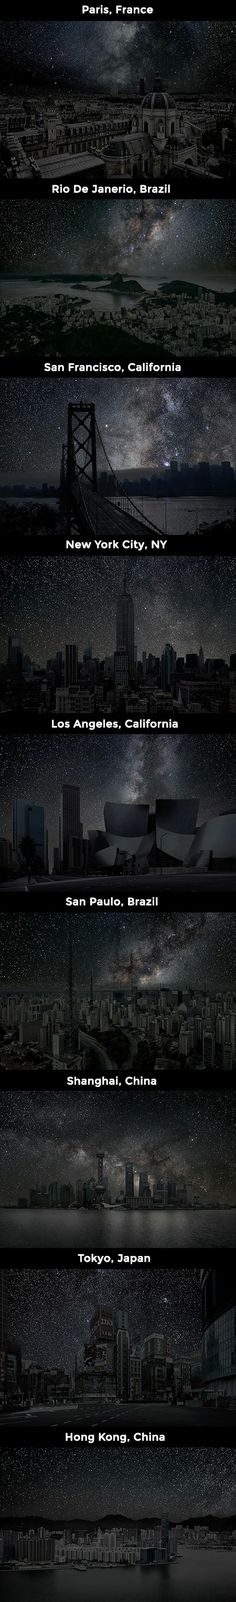 What the Night Sky Would Look Like in 9 Big Cities if There Was No Light Pollution